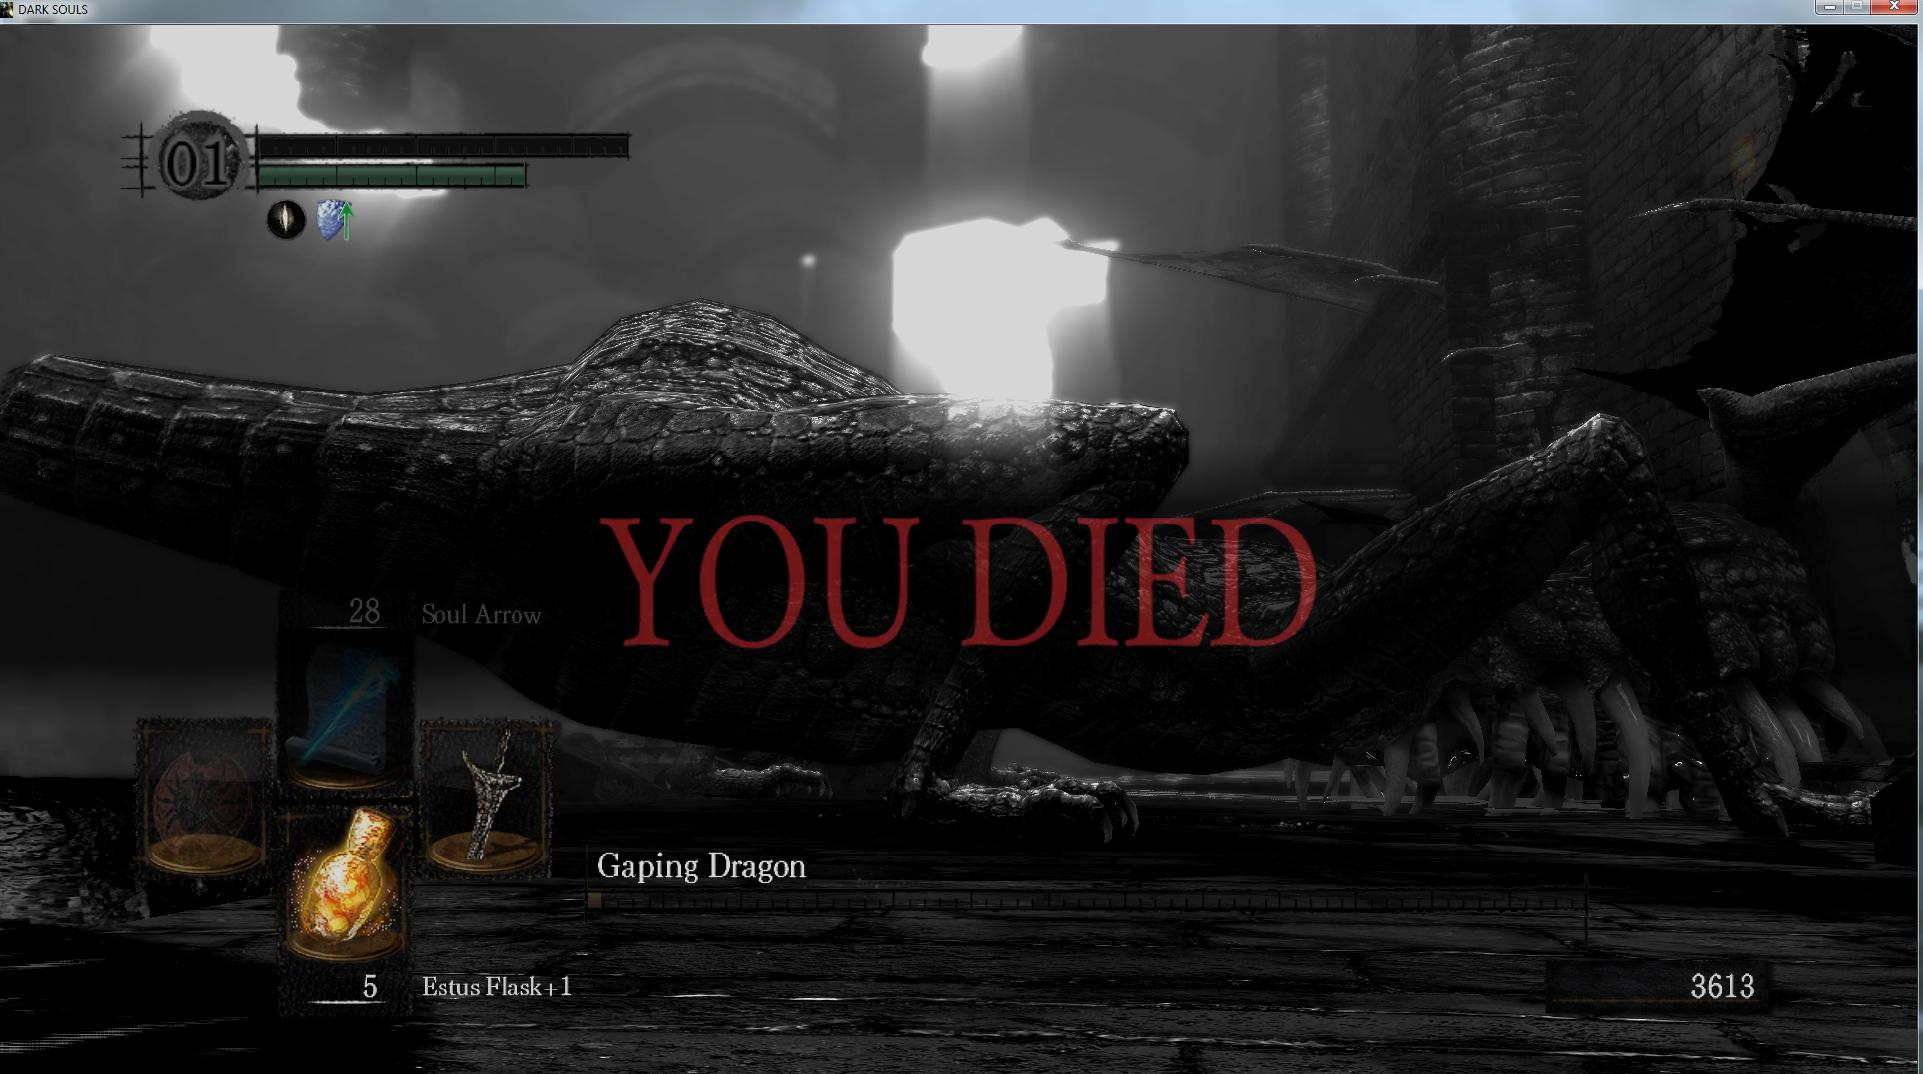 If you plan on playing Dark Souls, get used to seeing this screen. A lot.